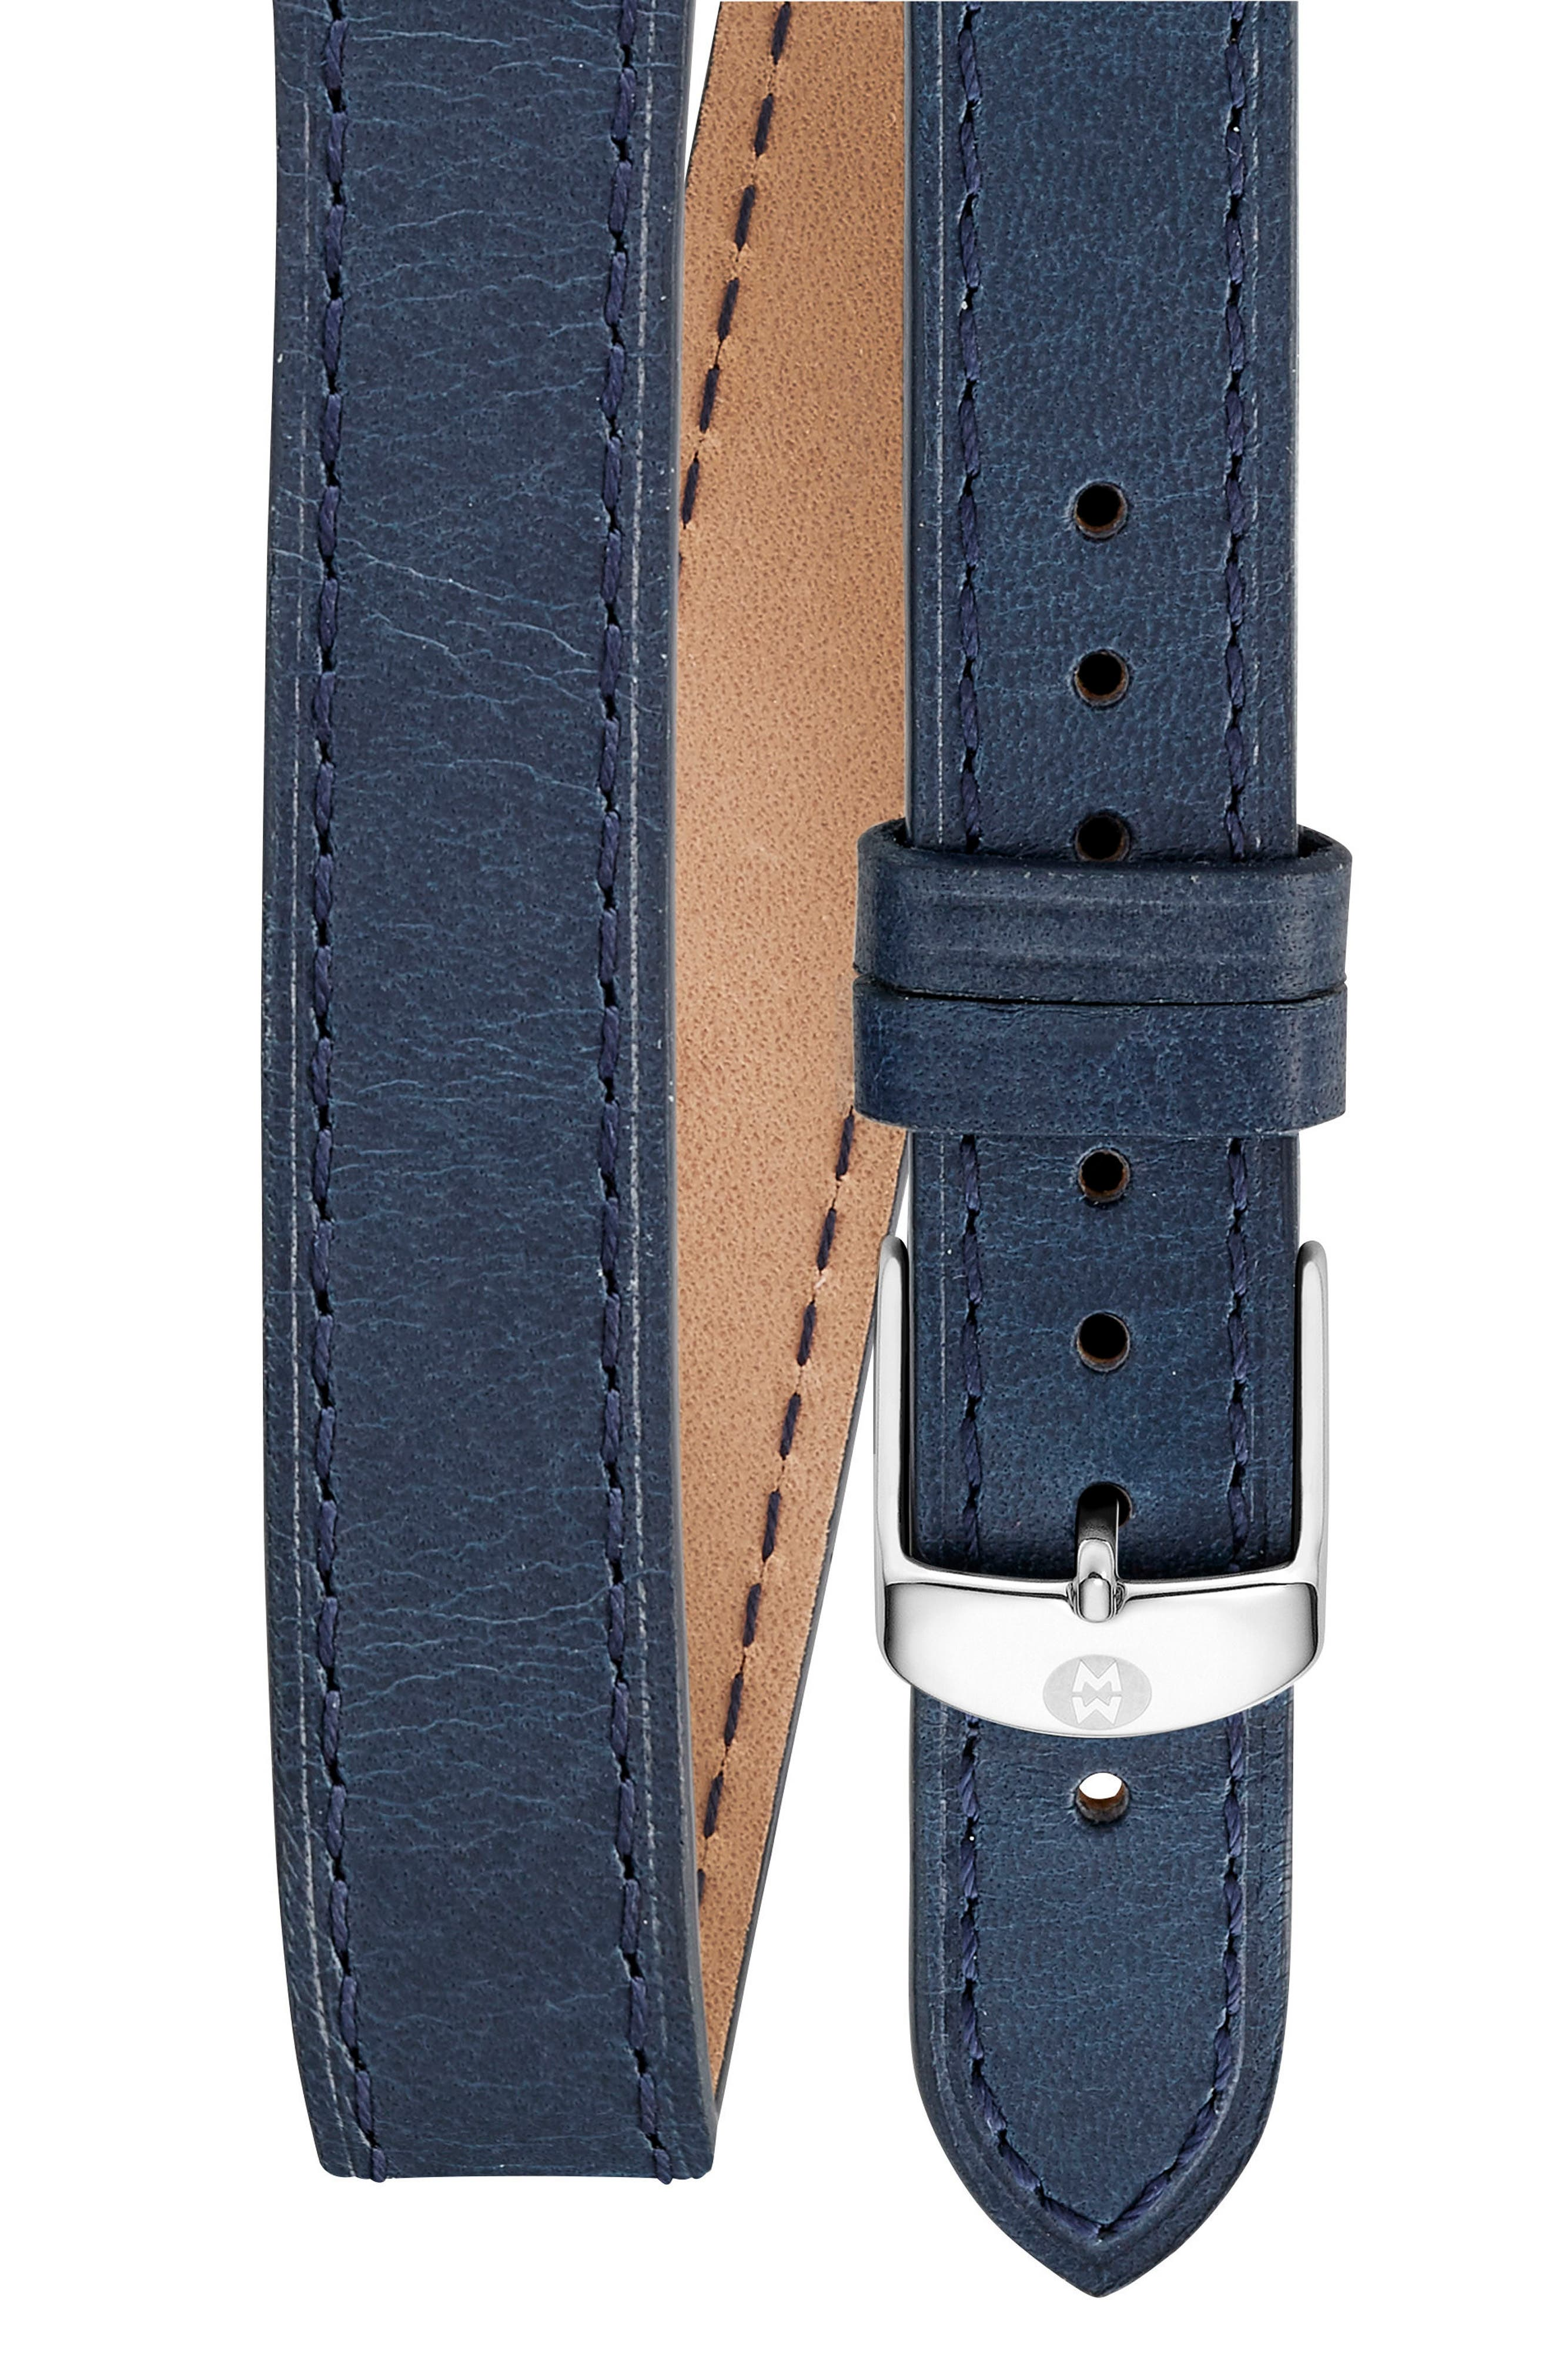 16mm Leather Watch Strap,                         Main,                         color, NAVY